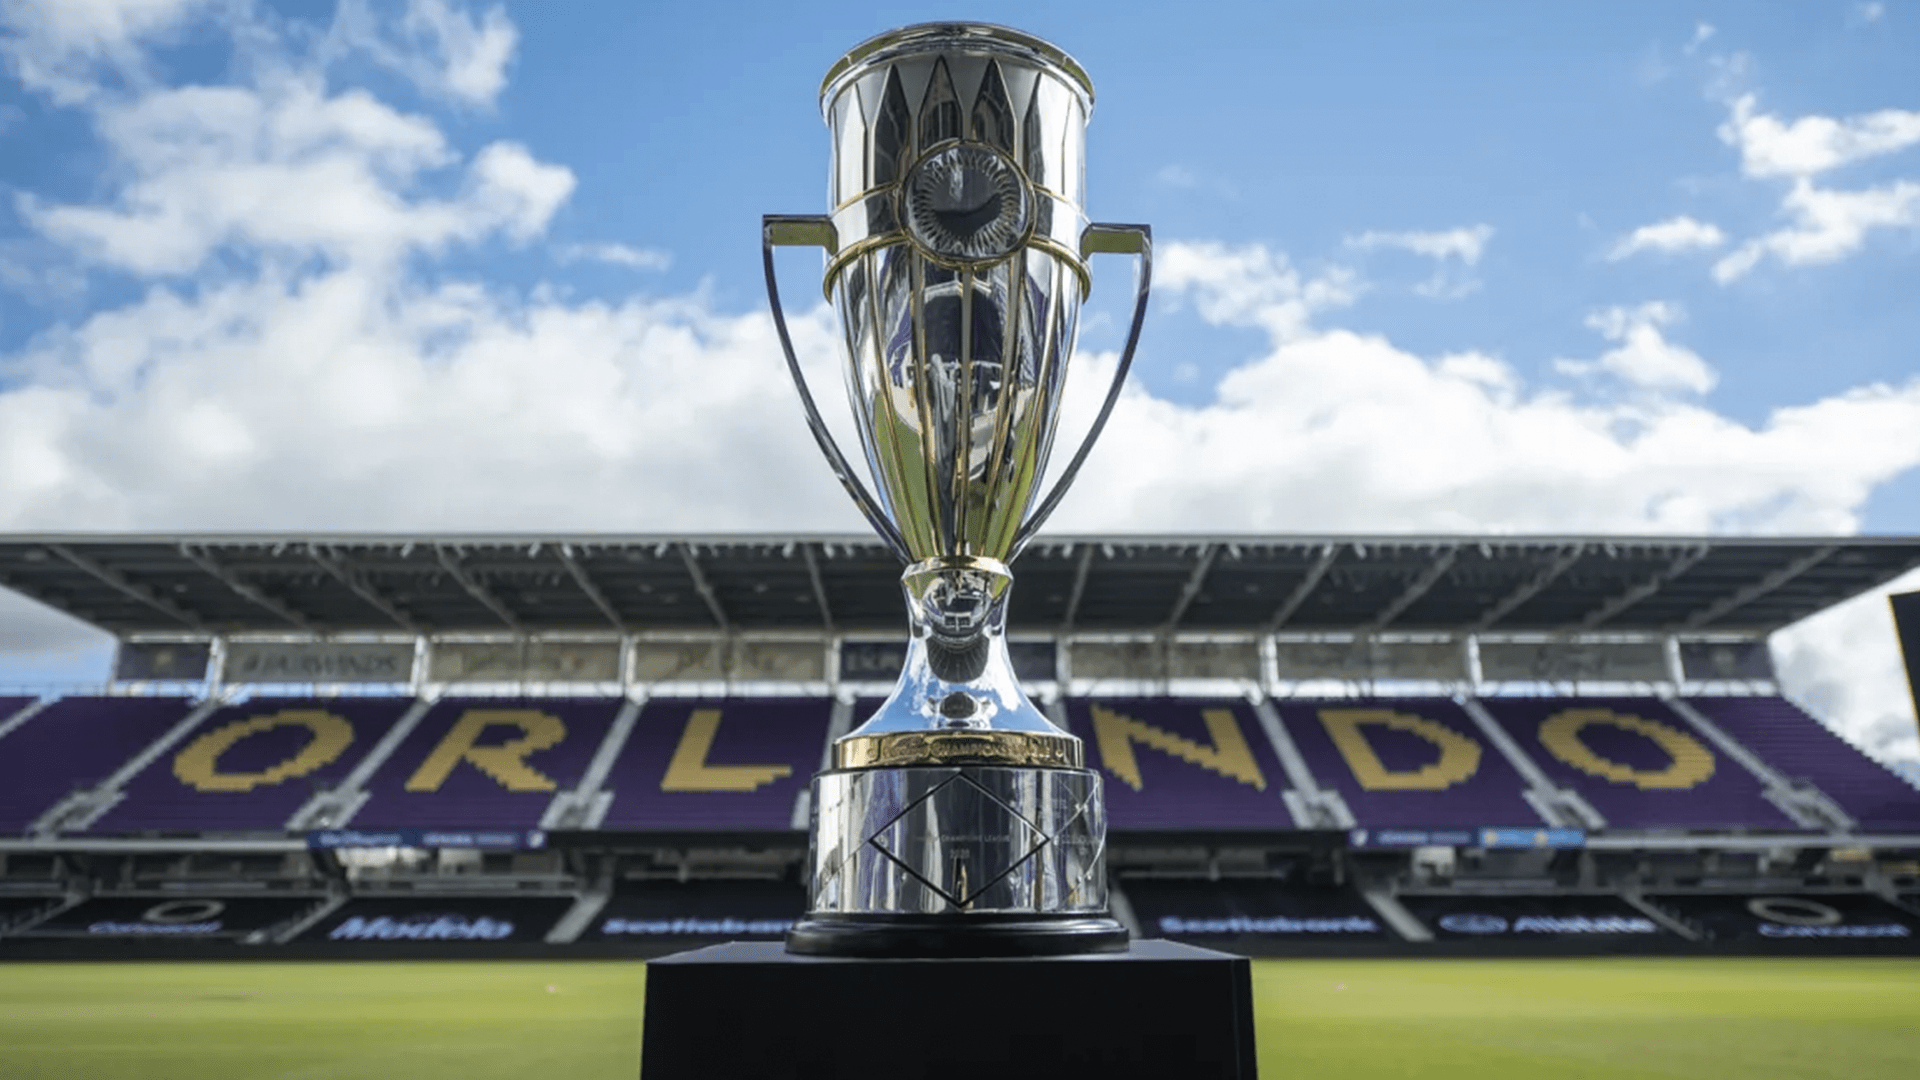 Winners and losers from the new Concacaf Champions League format   Andrew Wiebe   MLSSoccer.com